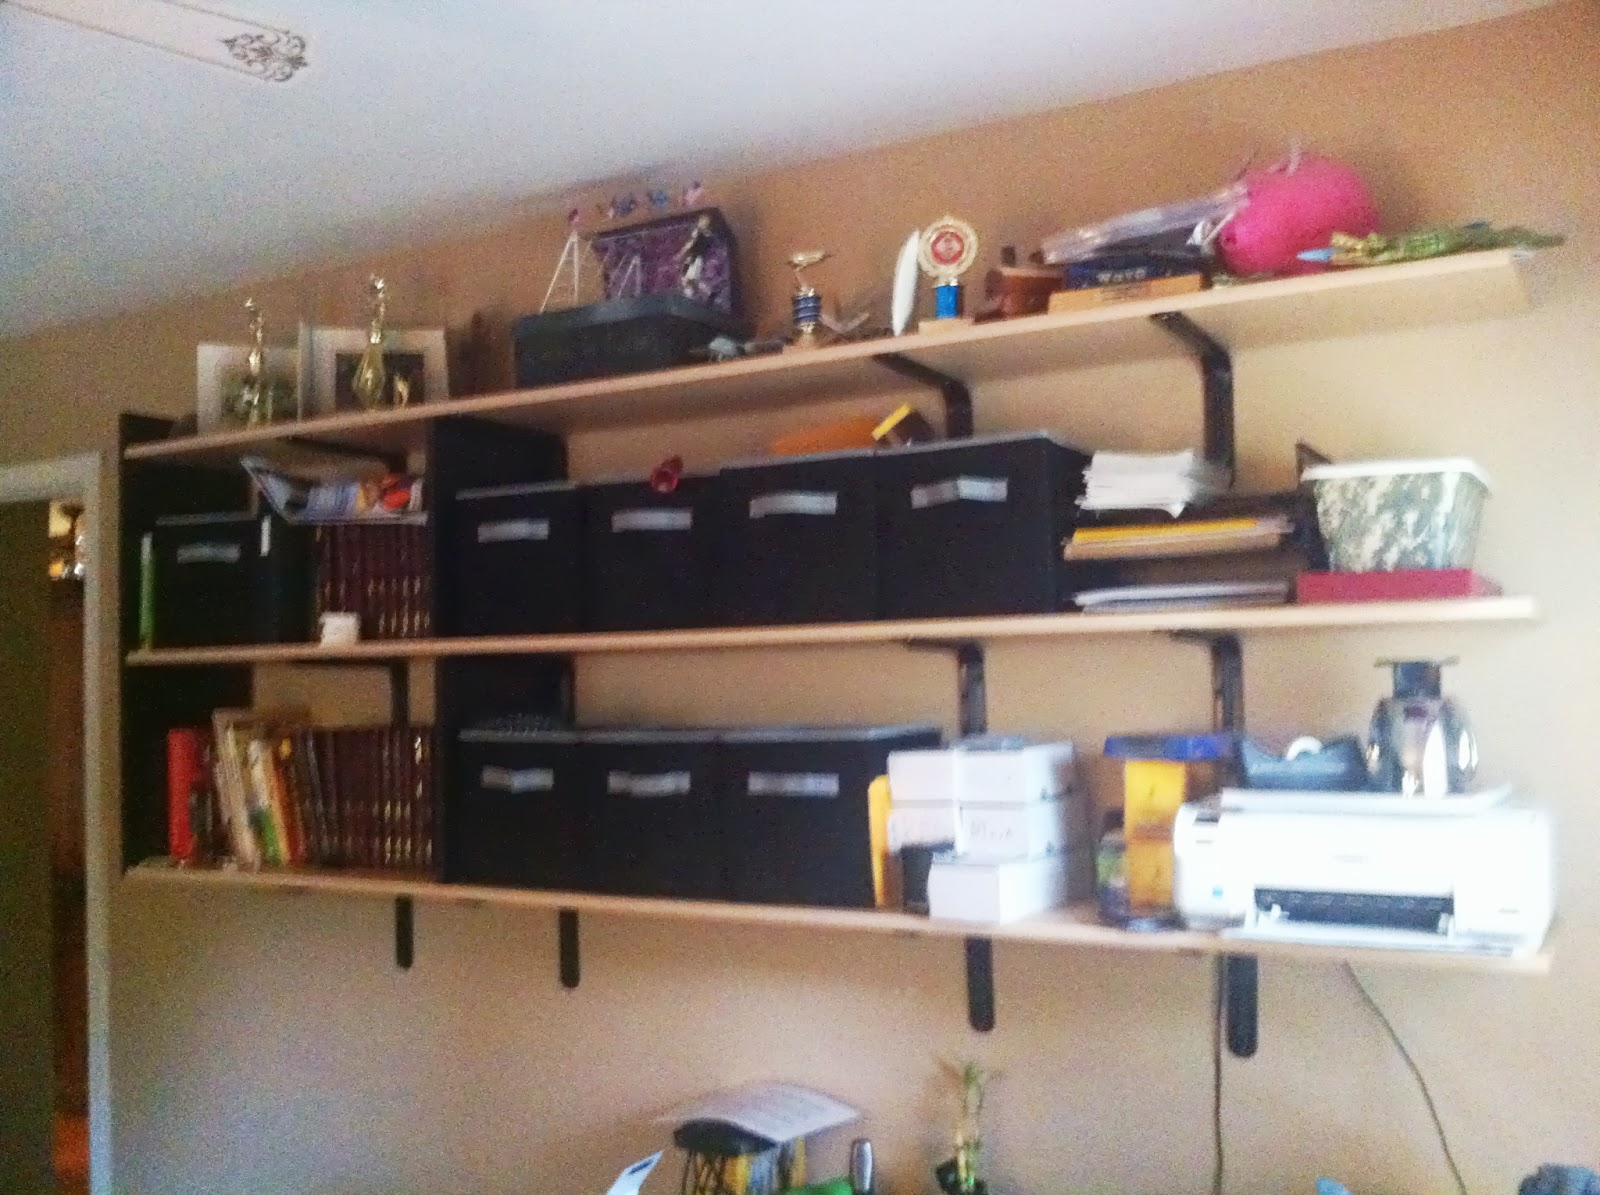 Basically Organized Wall Shelves Give The Kids Tons Of